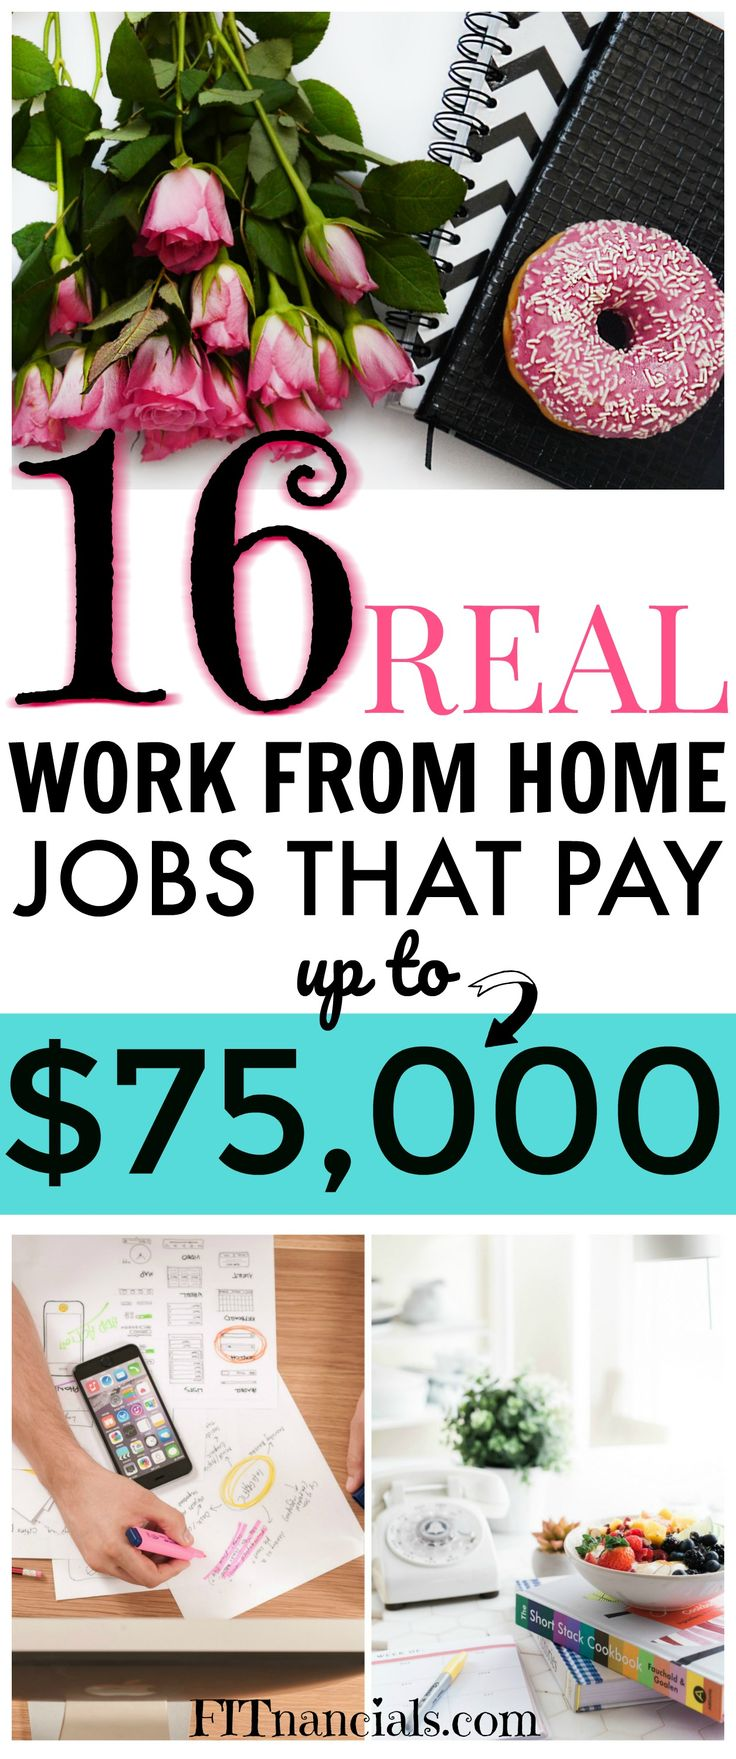 real work from home jobs  via @fitnancials